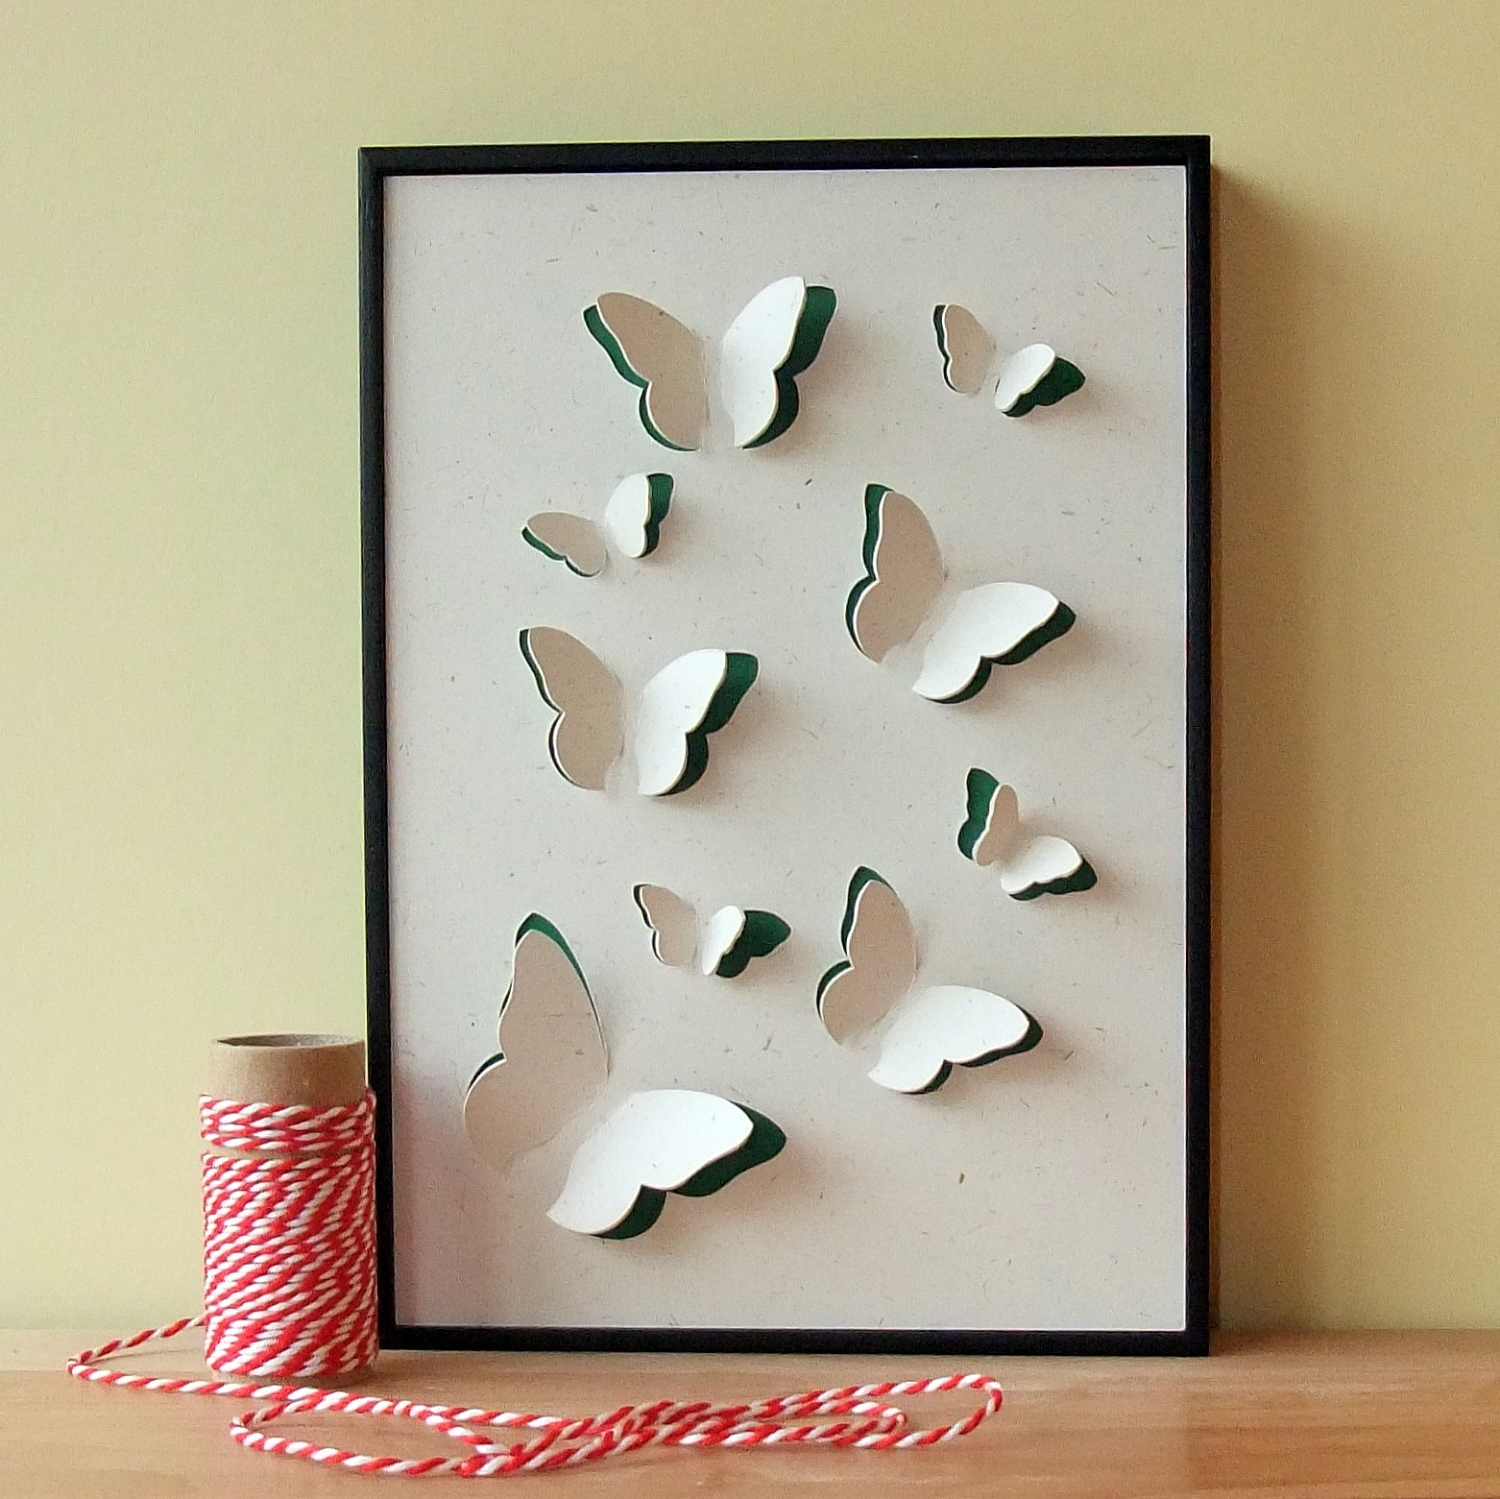 Best And Newest Wall Art Ideas Design : Butterefly Animals 3D Paper Wall Art Within Diy 3D Wall Art Butterflies (View 3 of 15)